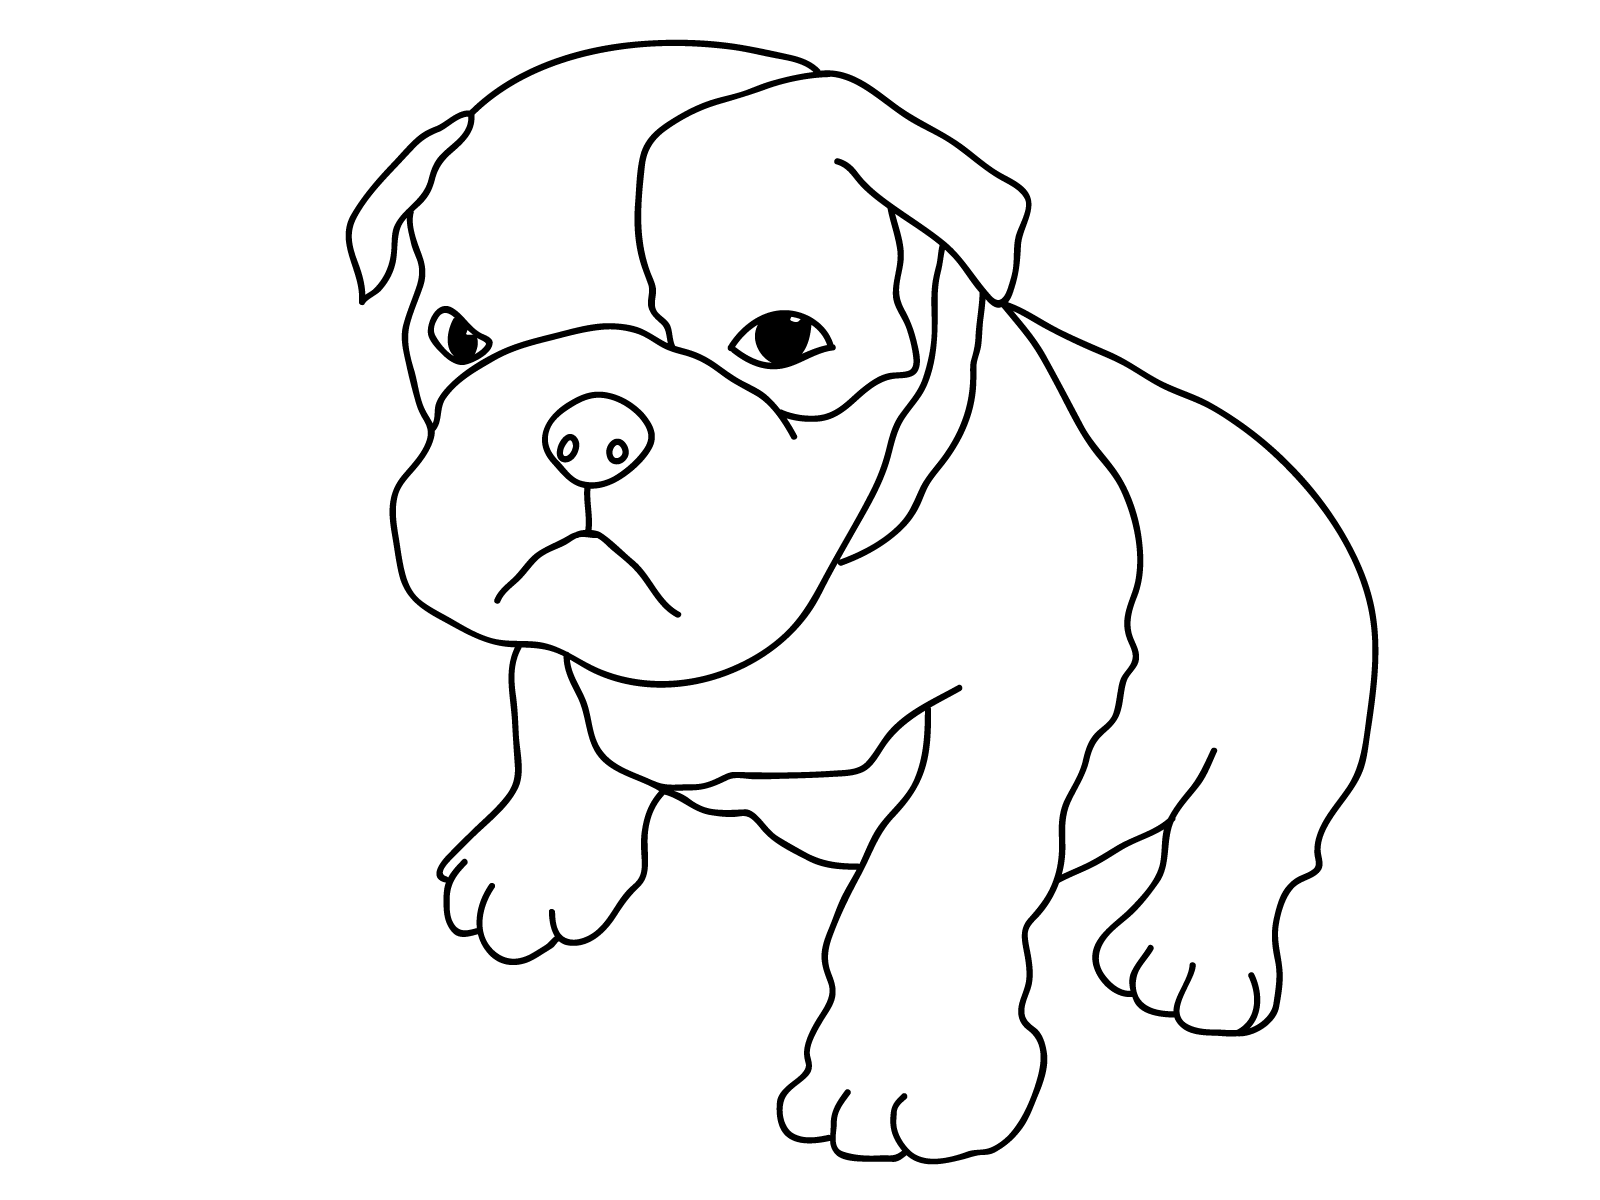 dog images to color printable dog coloring pages for kids cool2bkids dog color images to